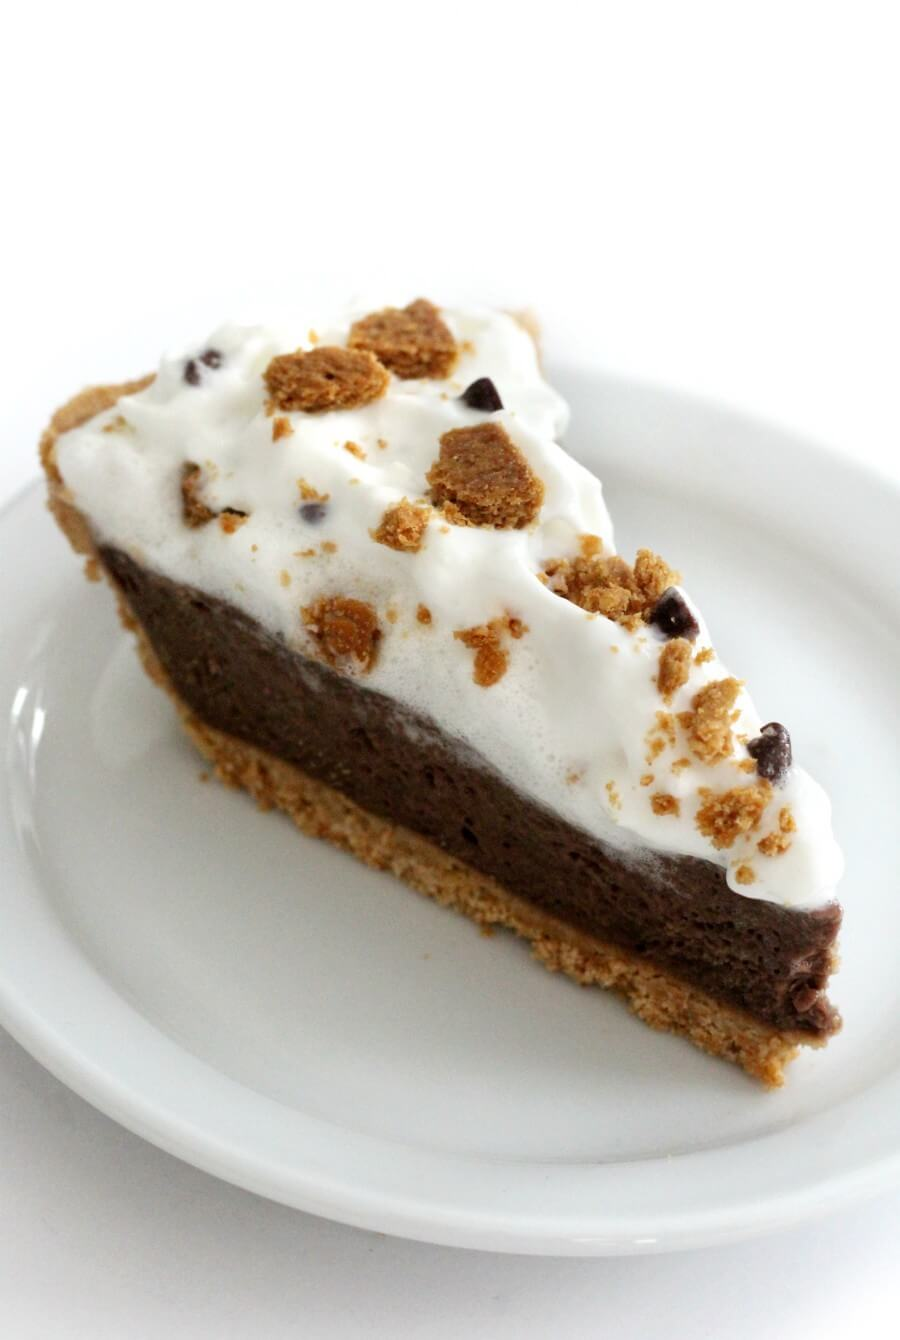 a slice of vegan s'mores pie on white plate